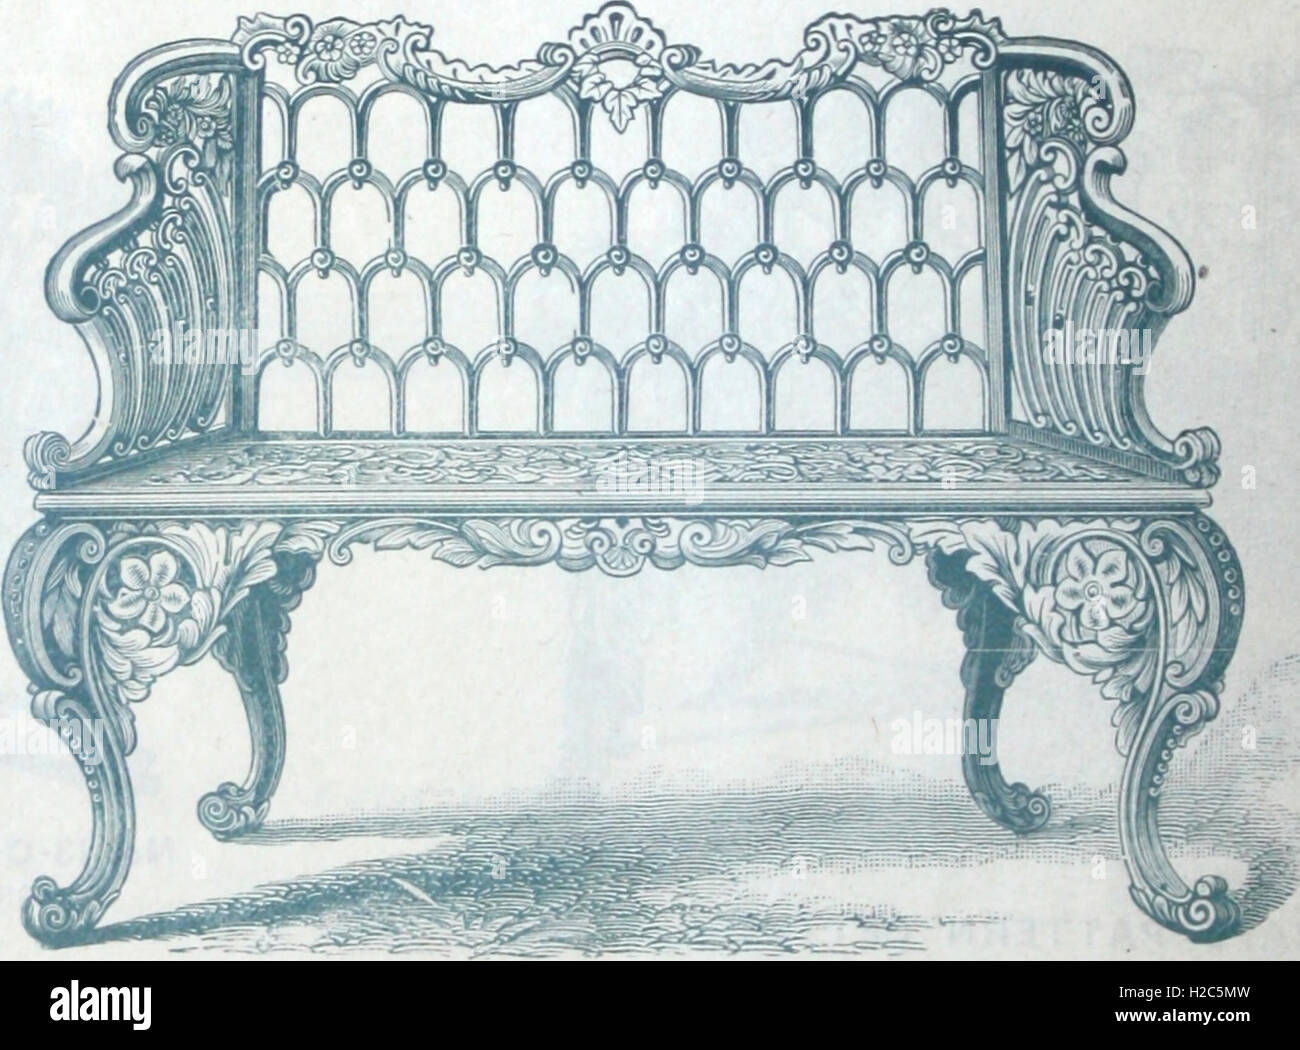 Catalogue of vases, settees, fountains and other lawn furniture (1904) (1 - Stock Image